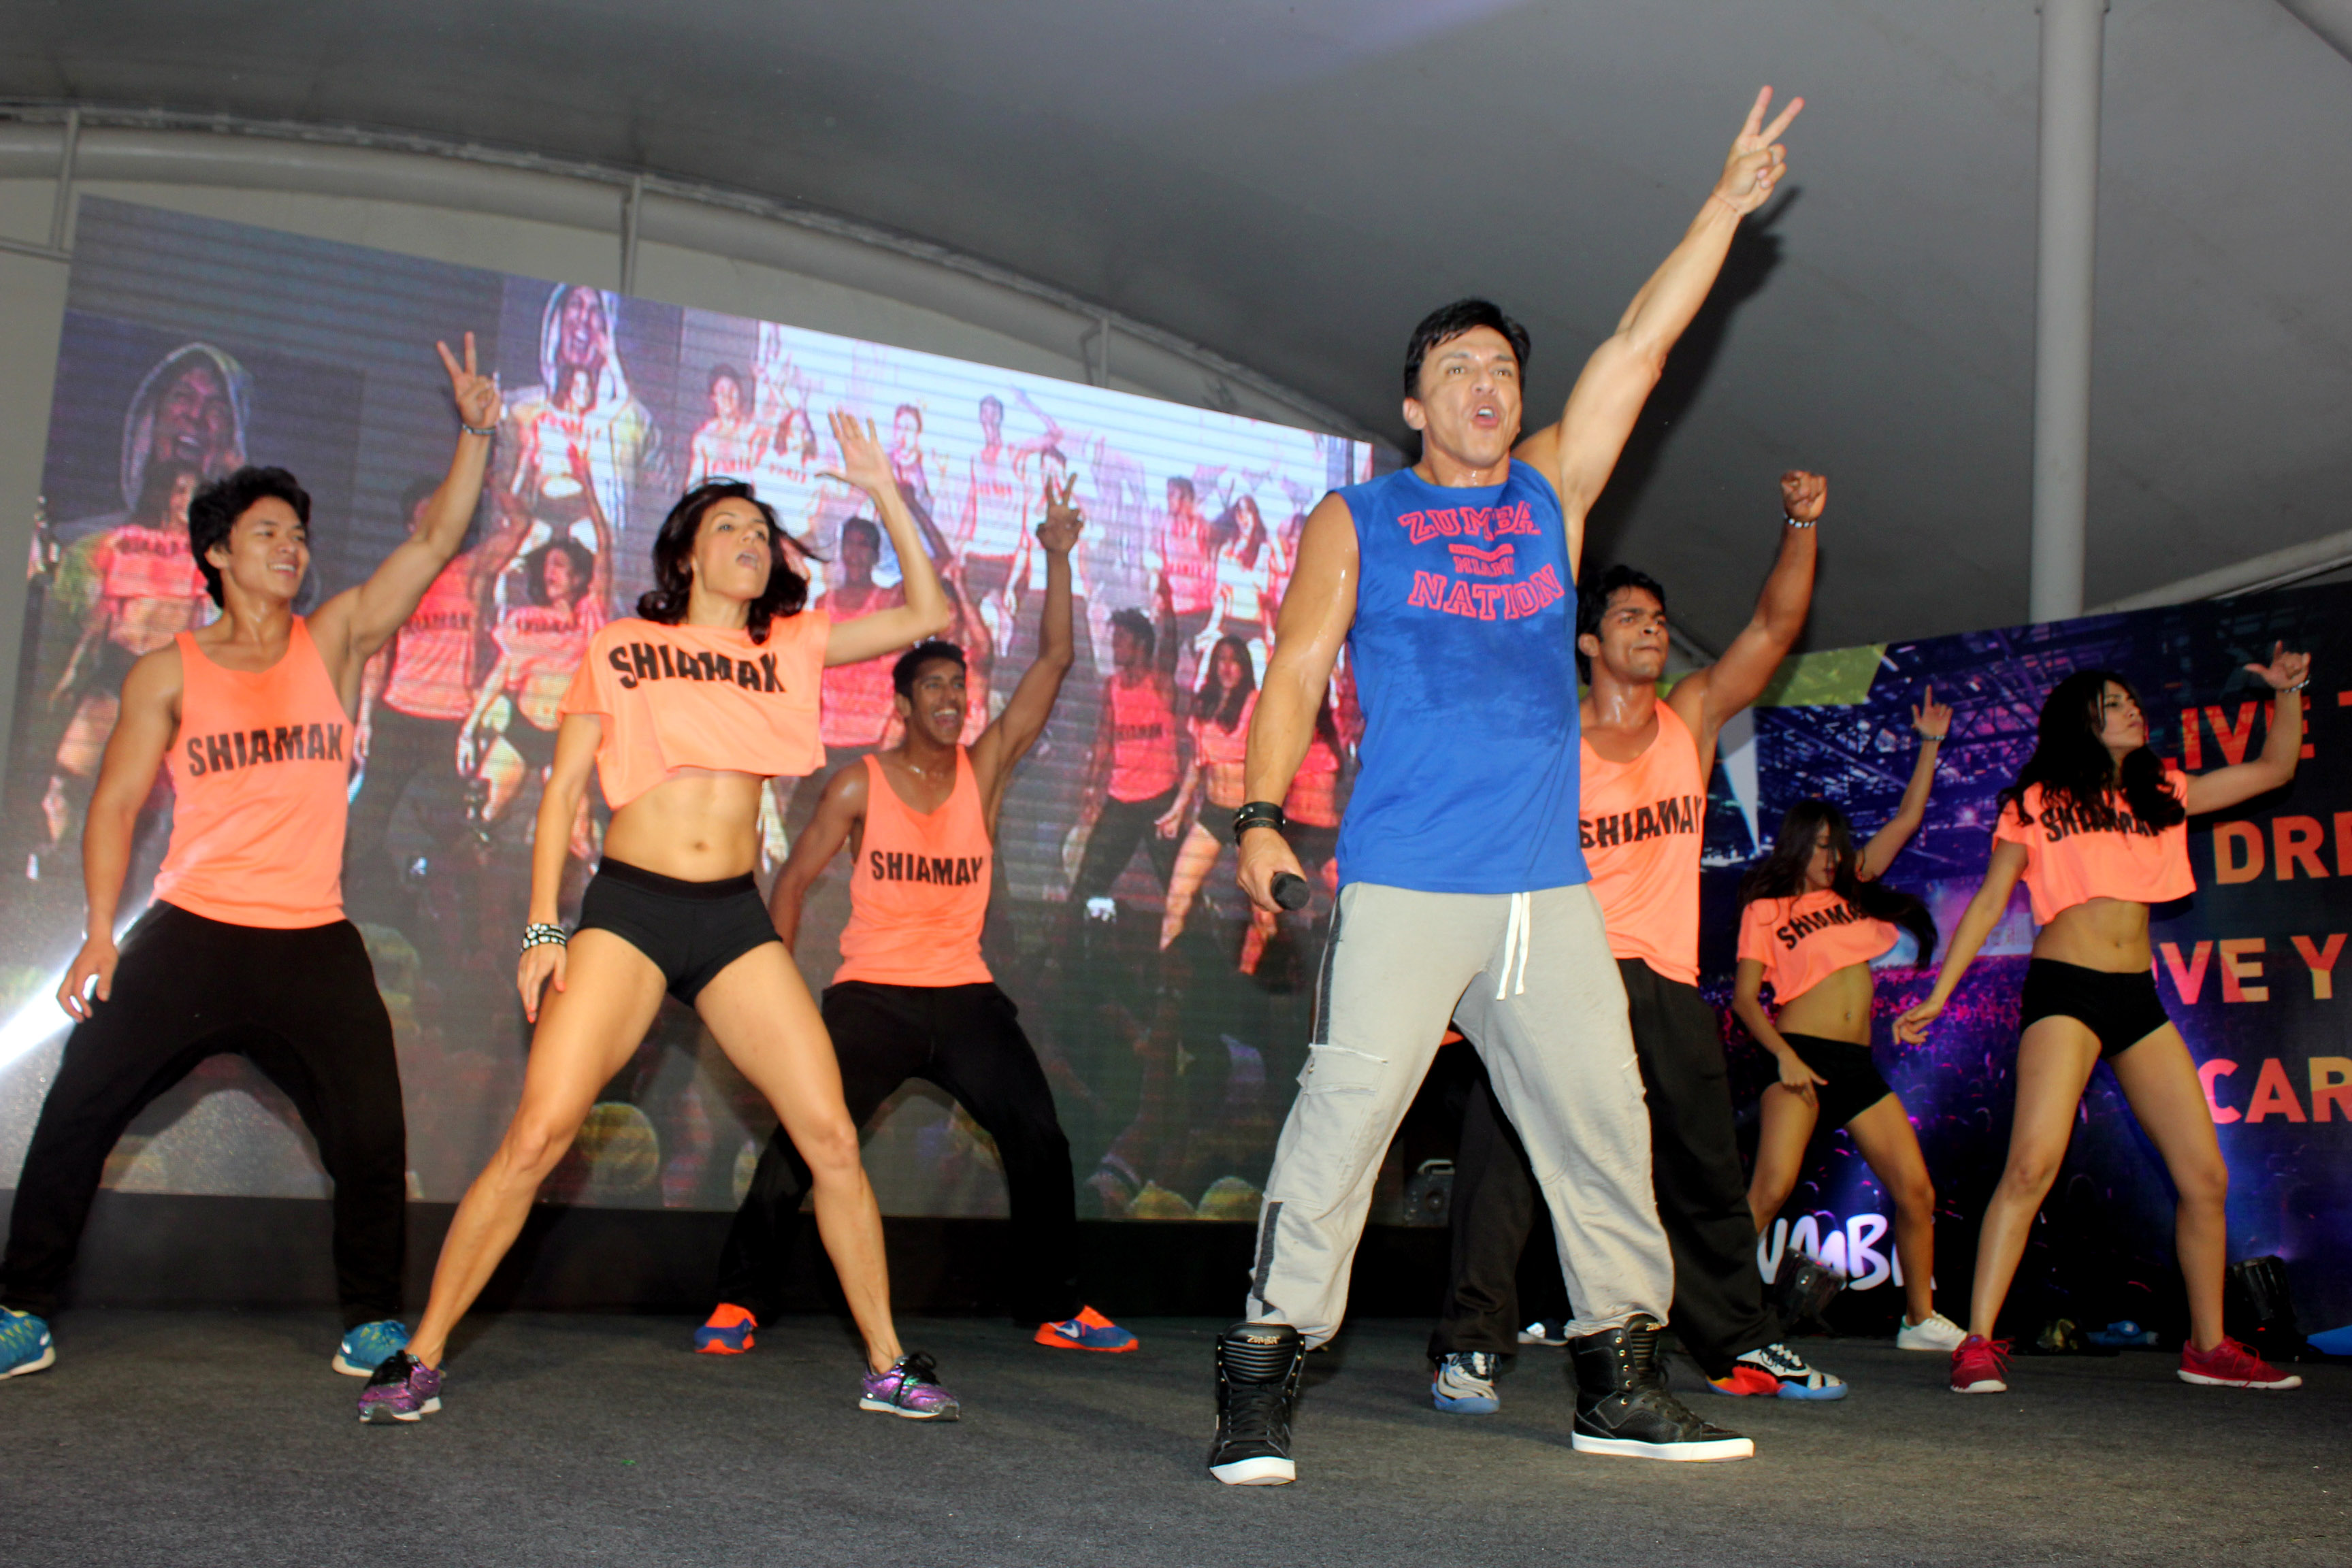 Beto Perez on stage with SHIAMAK instructors who are Zumba certified